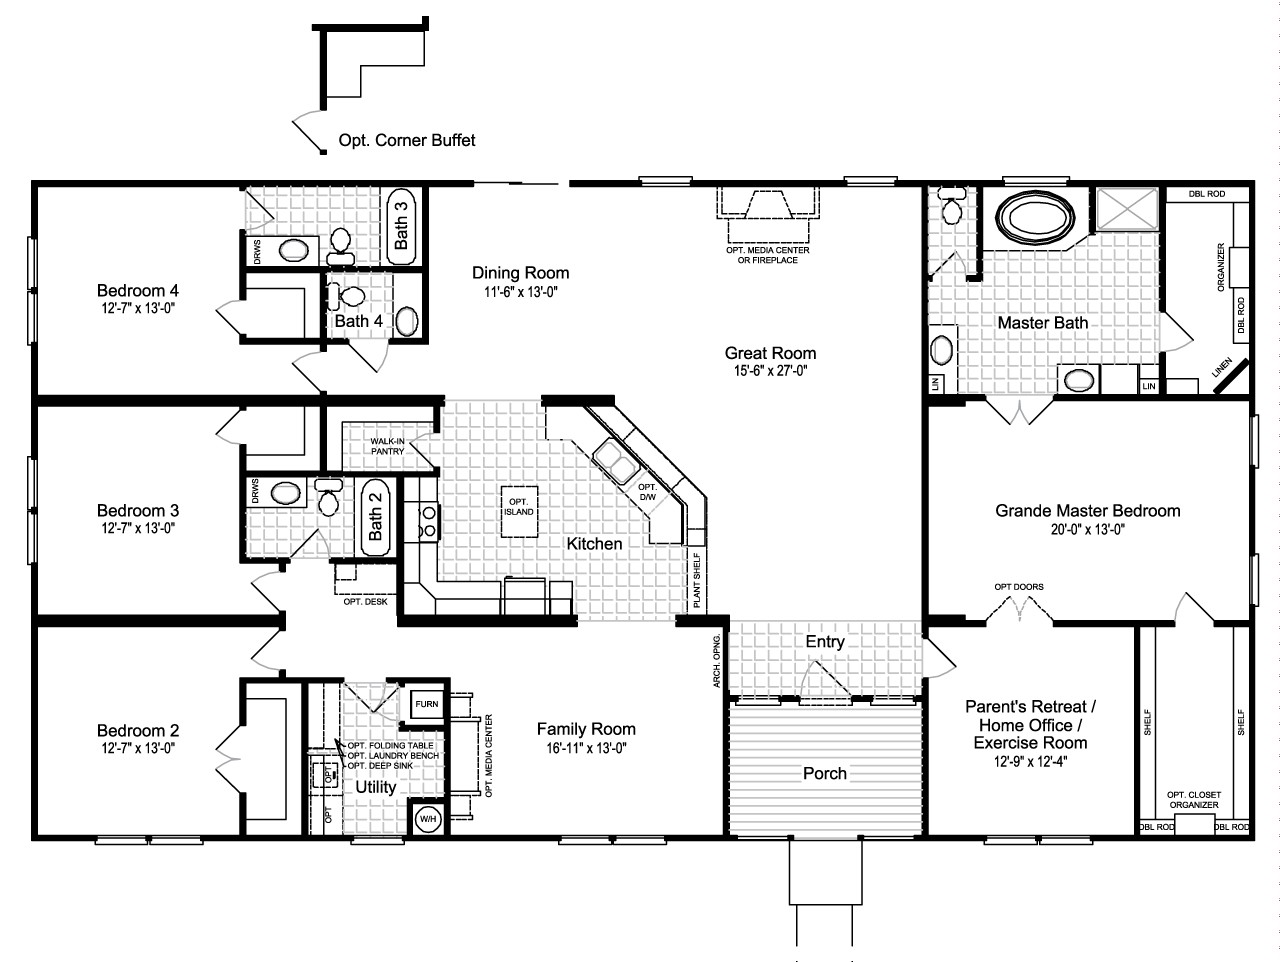 Fp 05 Tx HaciendaIII VRWD76D3 on Holiday Builders Floor Plan Monaco